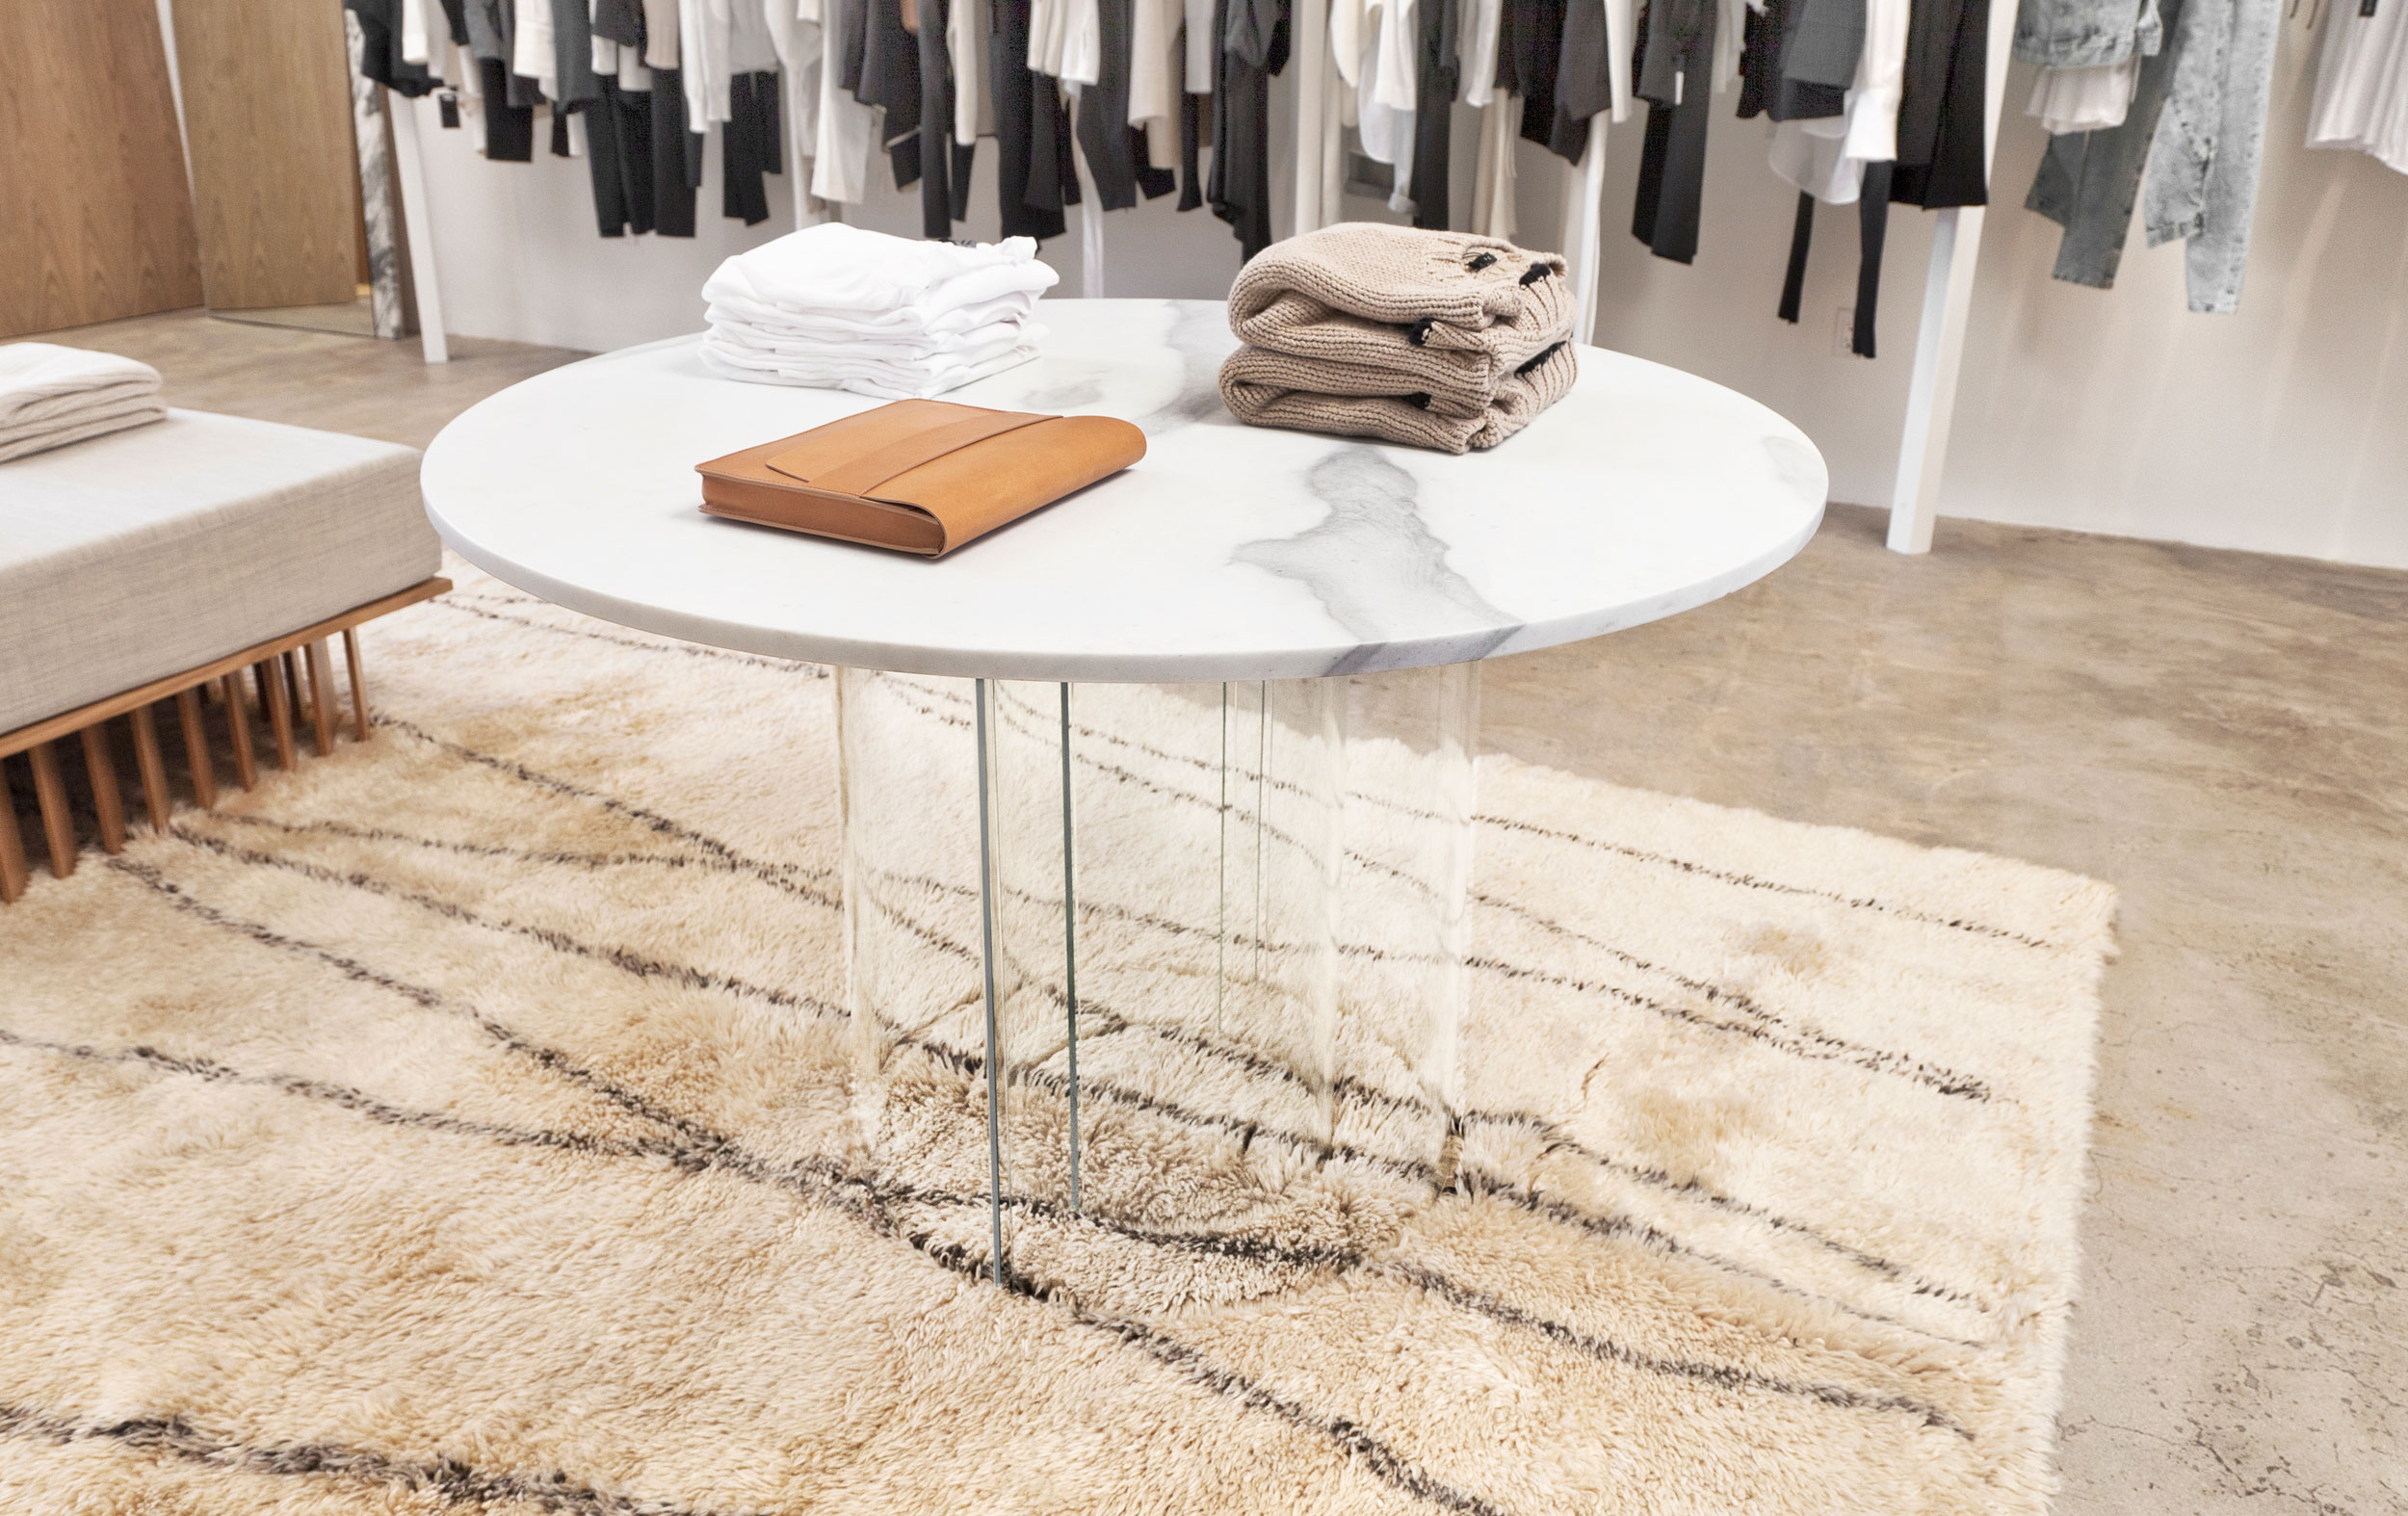 """Accessories and knits are presented above a round slab of milky white marble with washes of cool gray and distinct,""""ghost-like"""" markings. The natural stone appears to balance impossibly above four bent glass half-cylindrical bases."""